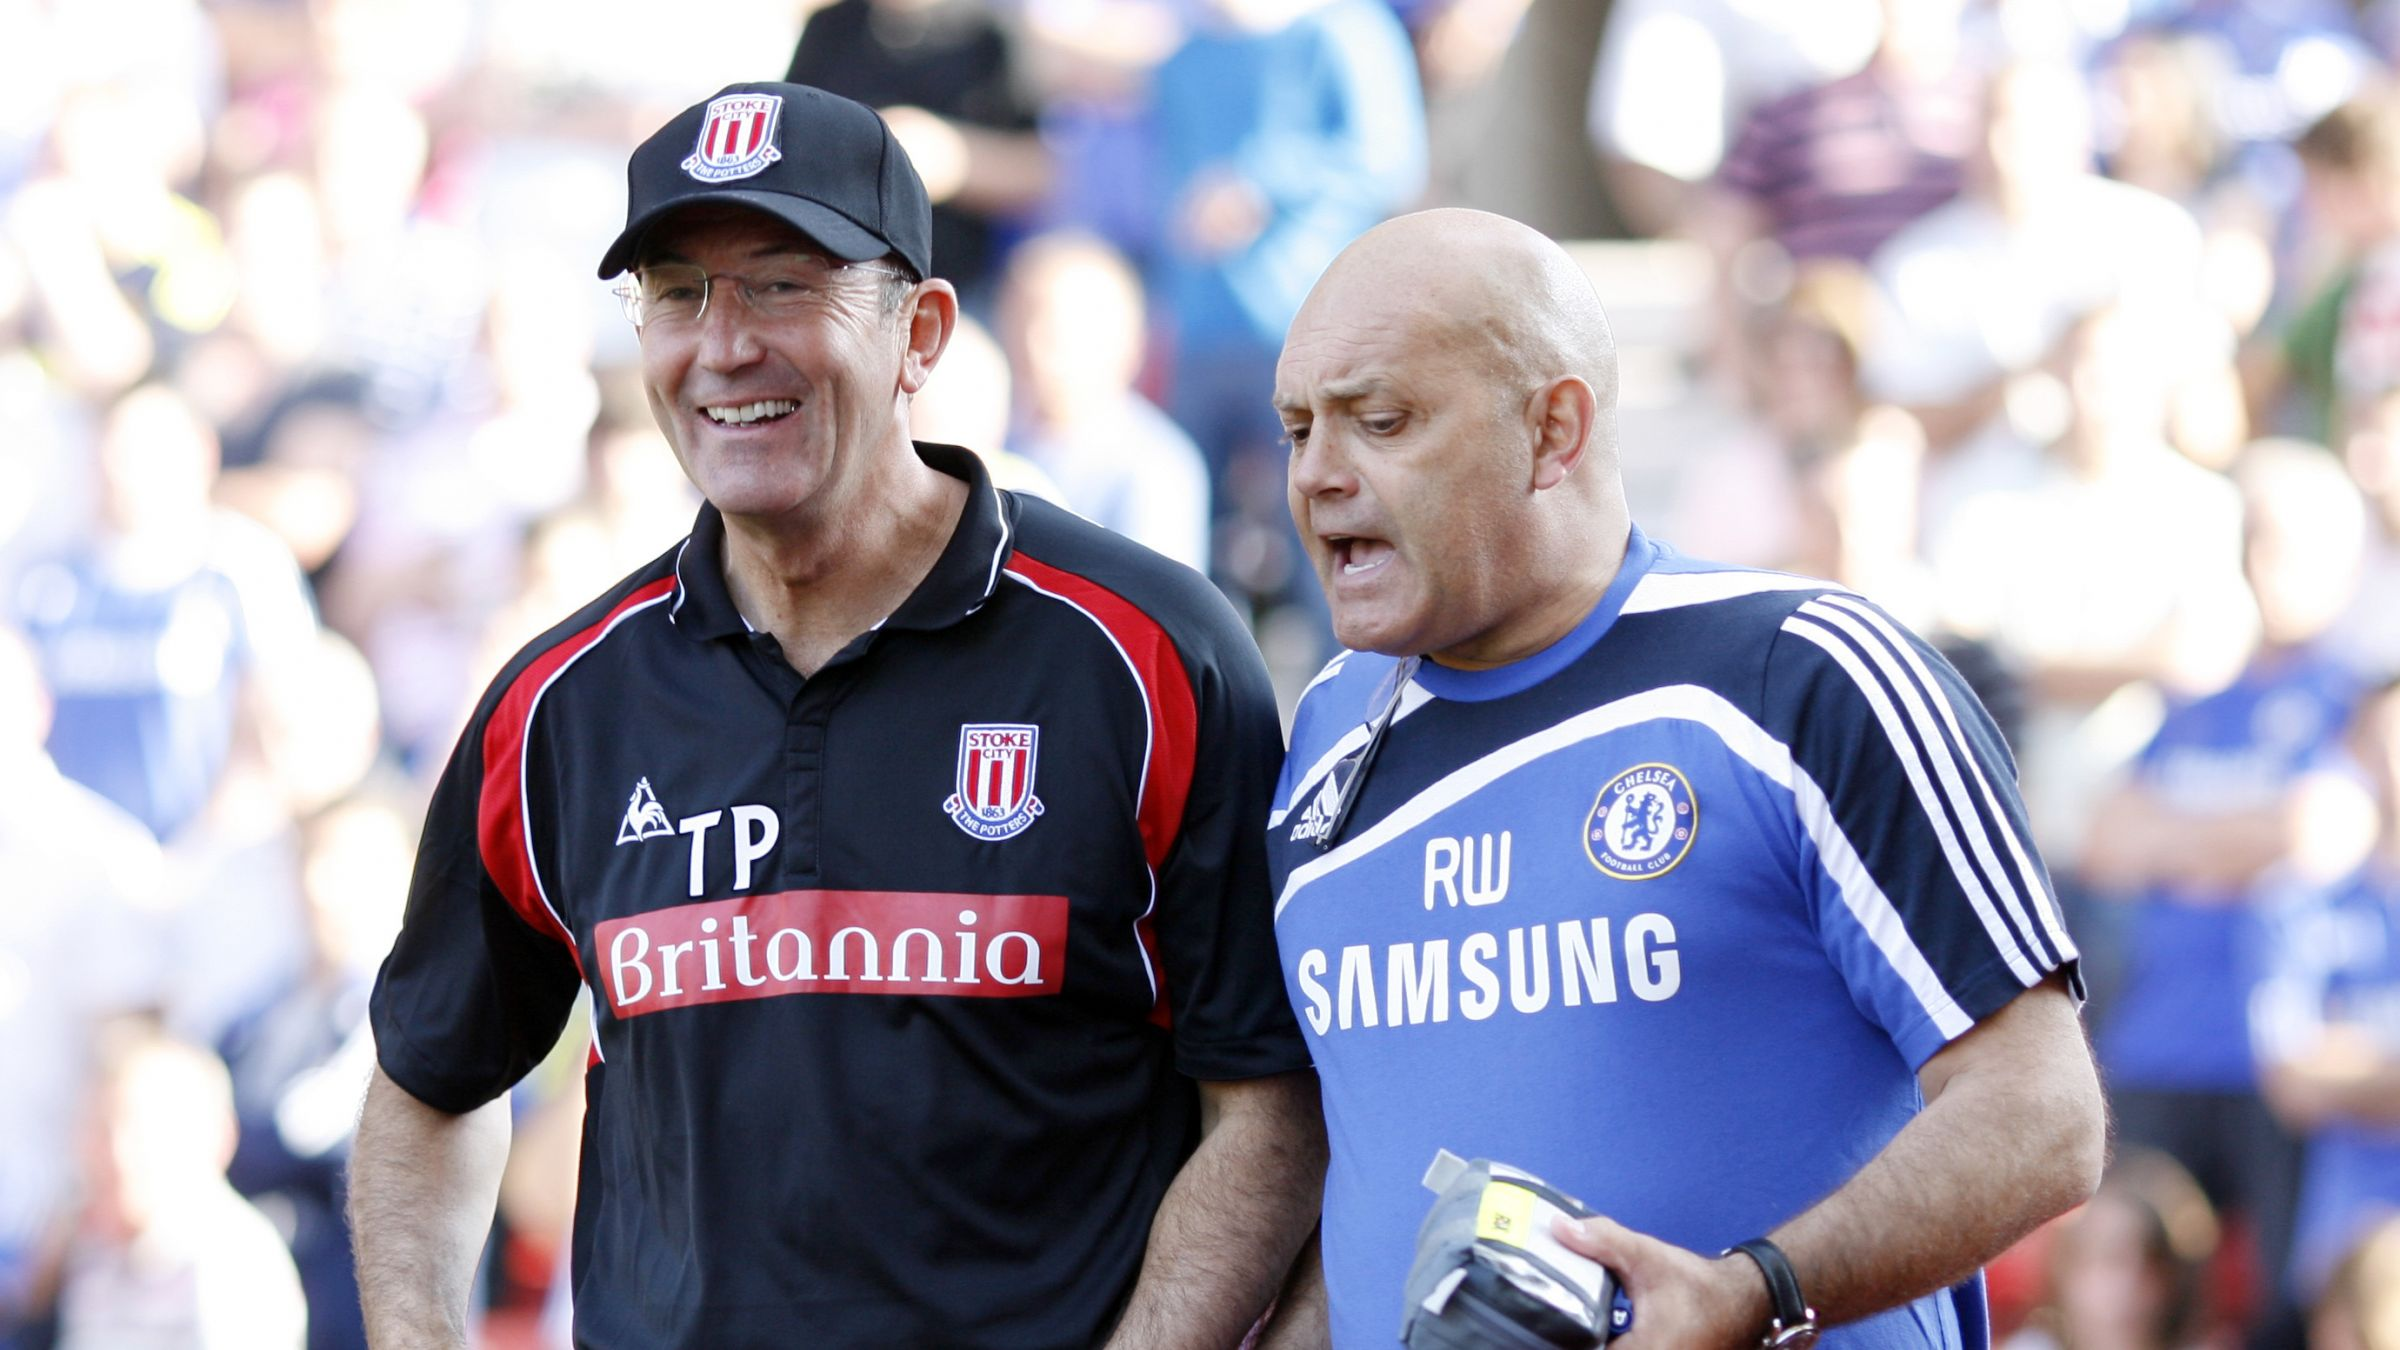 Middlesbrough manager Tony Pulis' tribute to Ray Wilkins